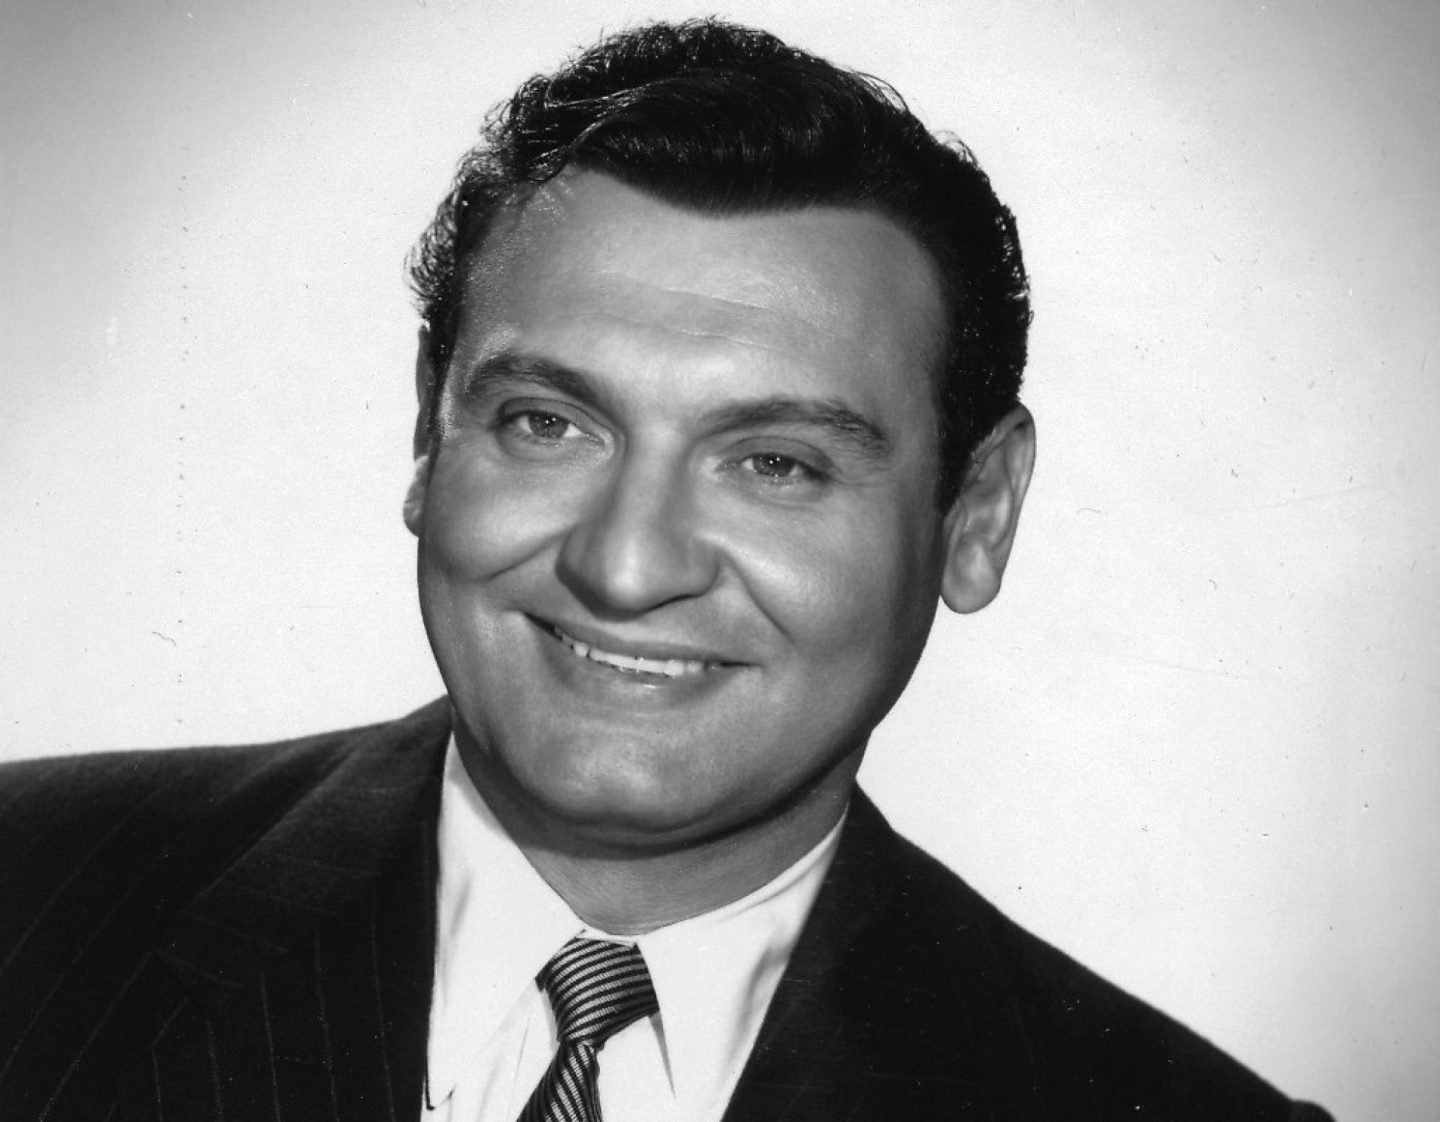 EVERY UK NUMBER ONE SONG: 'I Believe' - Frankie Laine